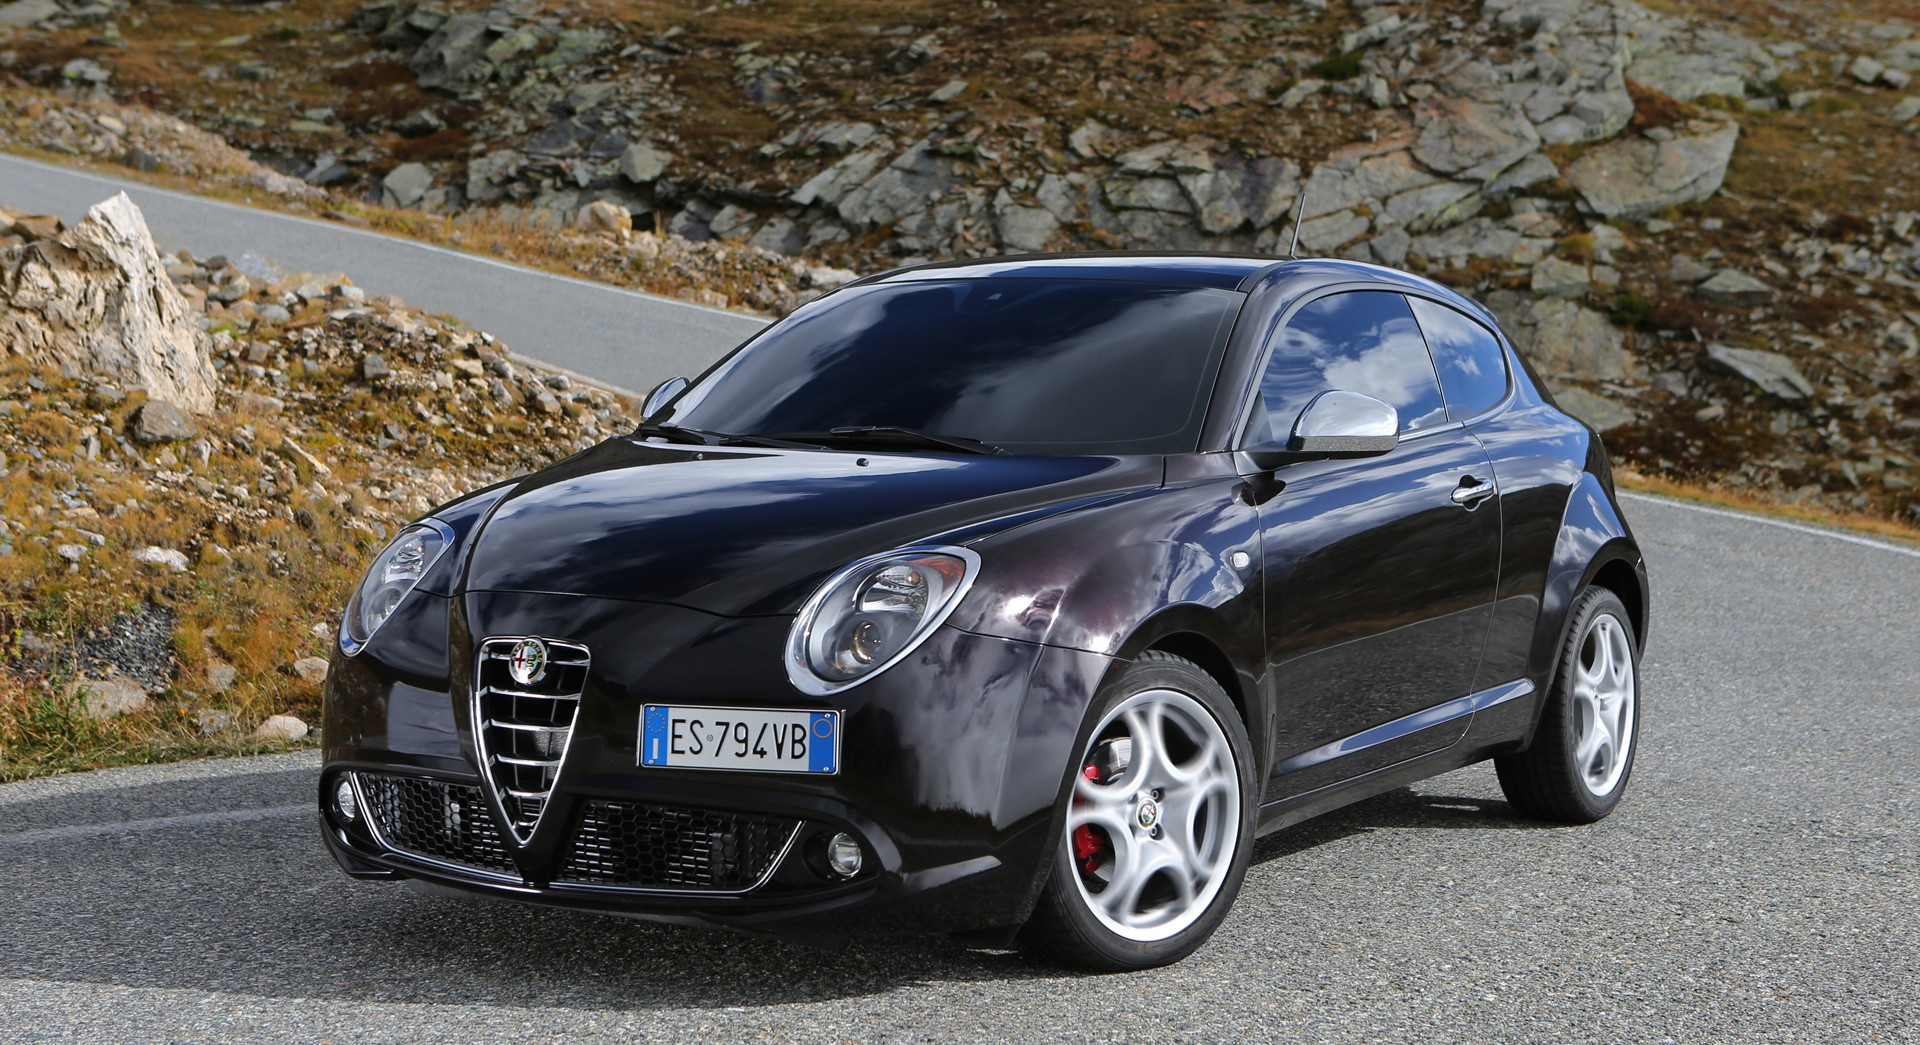 alfa romeo mito wallpaper black curves hd desktop wallpapers 4k hd. Black Bedroom Furniture Sets. Home Design Ideas